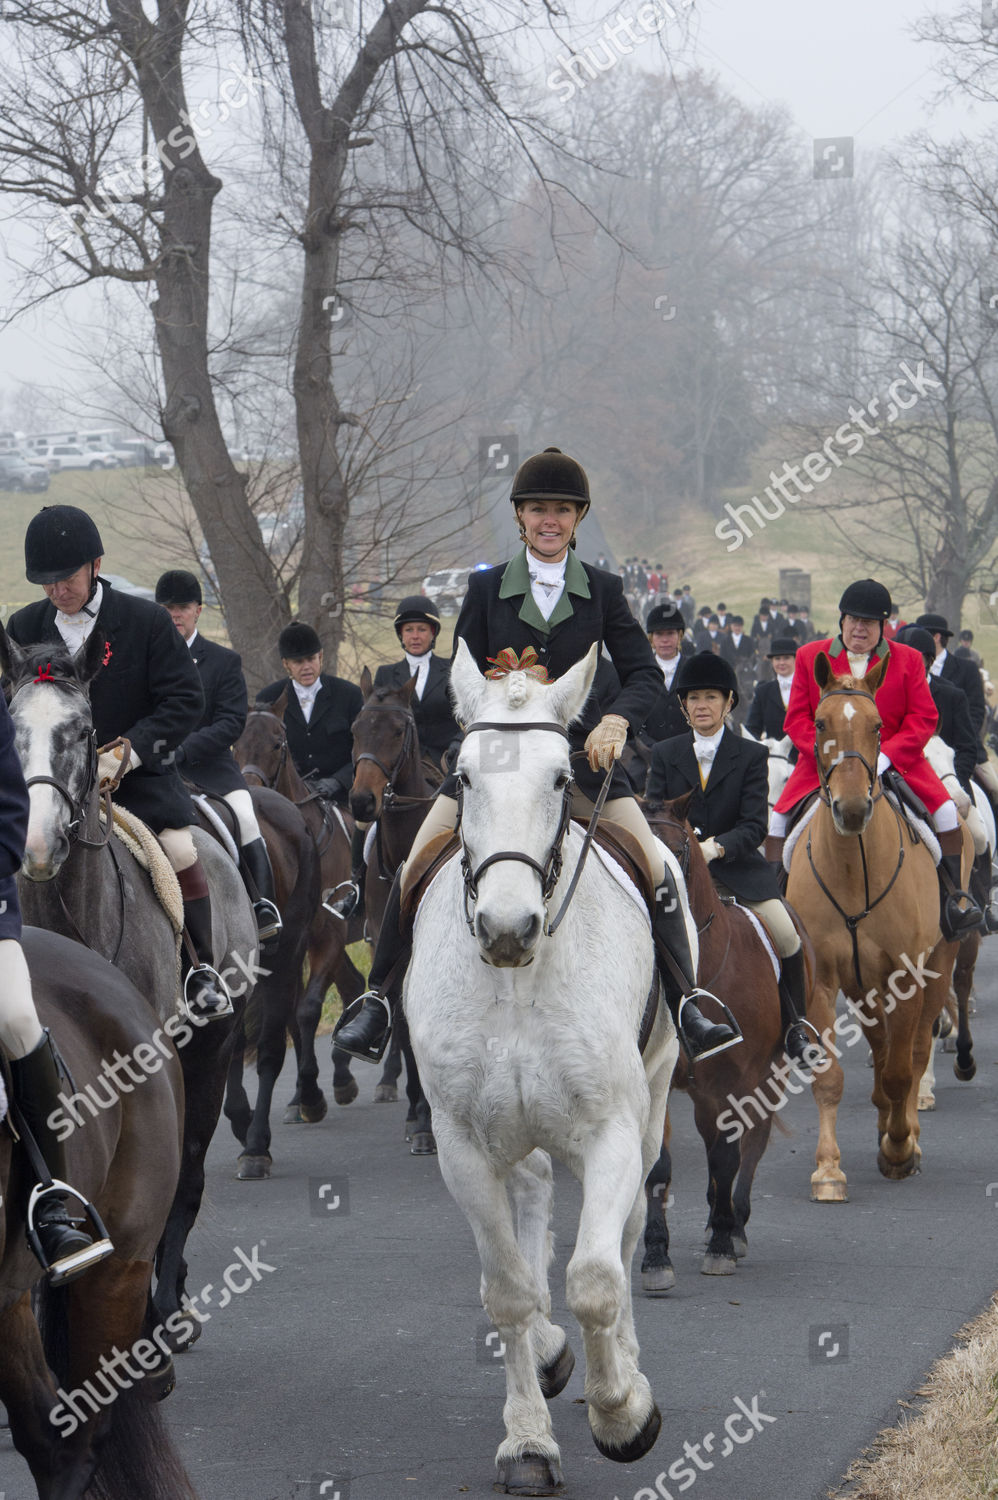 Christmas In Middleburg.Middleburg Hunt Club Prepares Their Annual Christmas